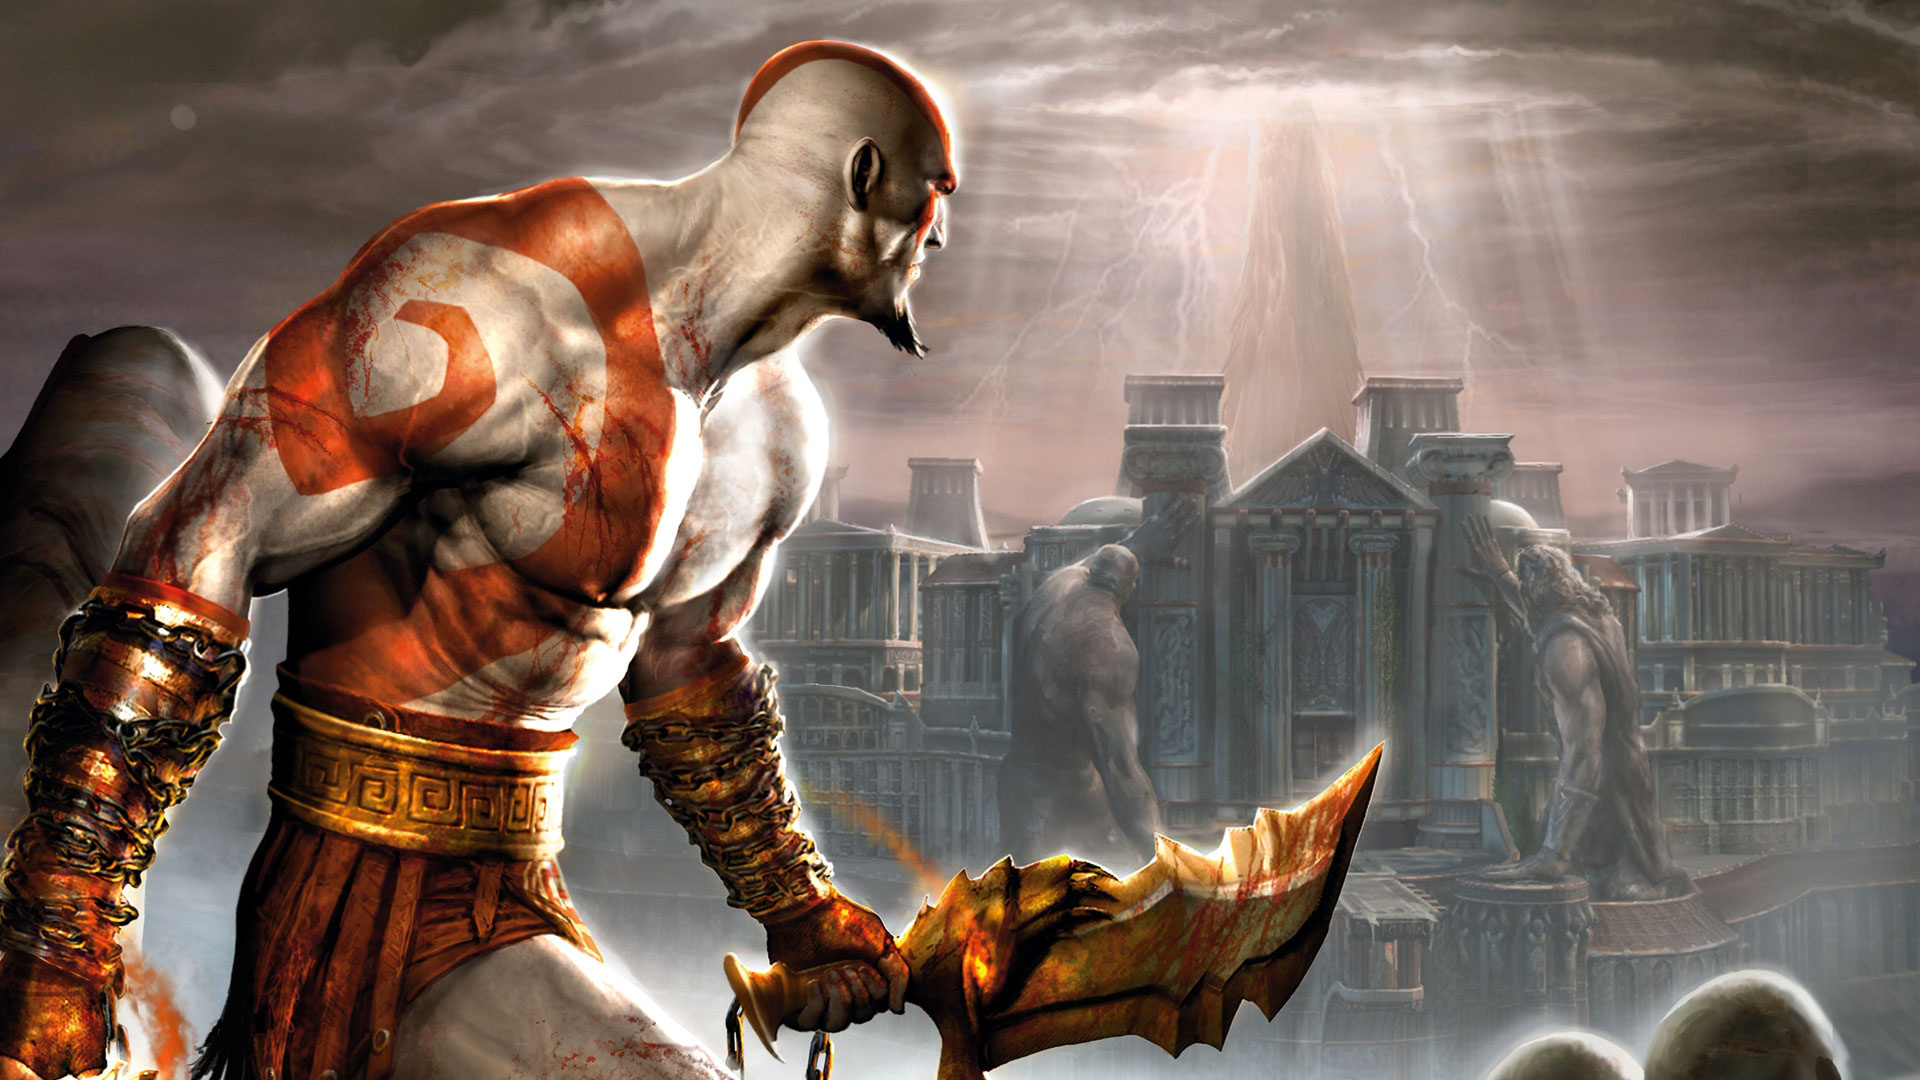 God of War Chains of Olympus HD Wallpapers Background Images